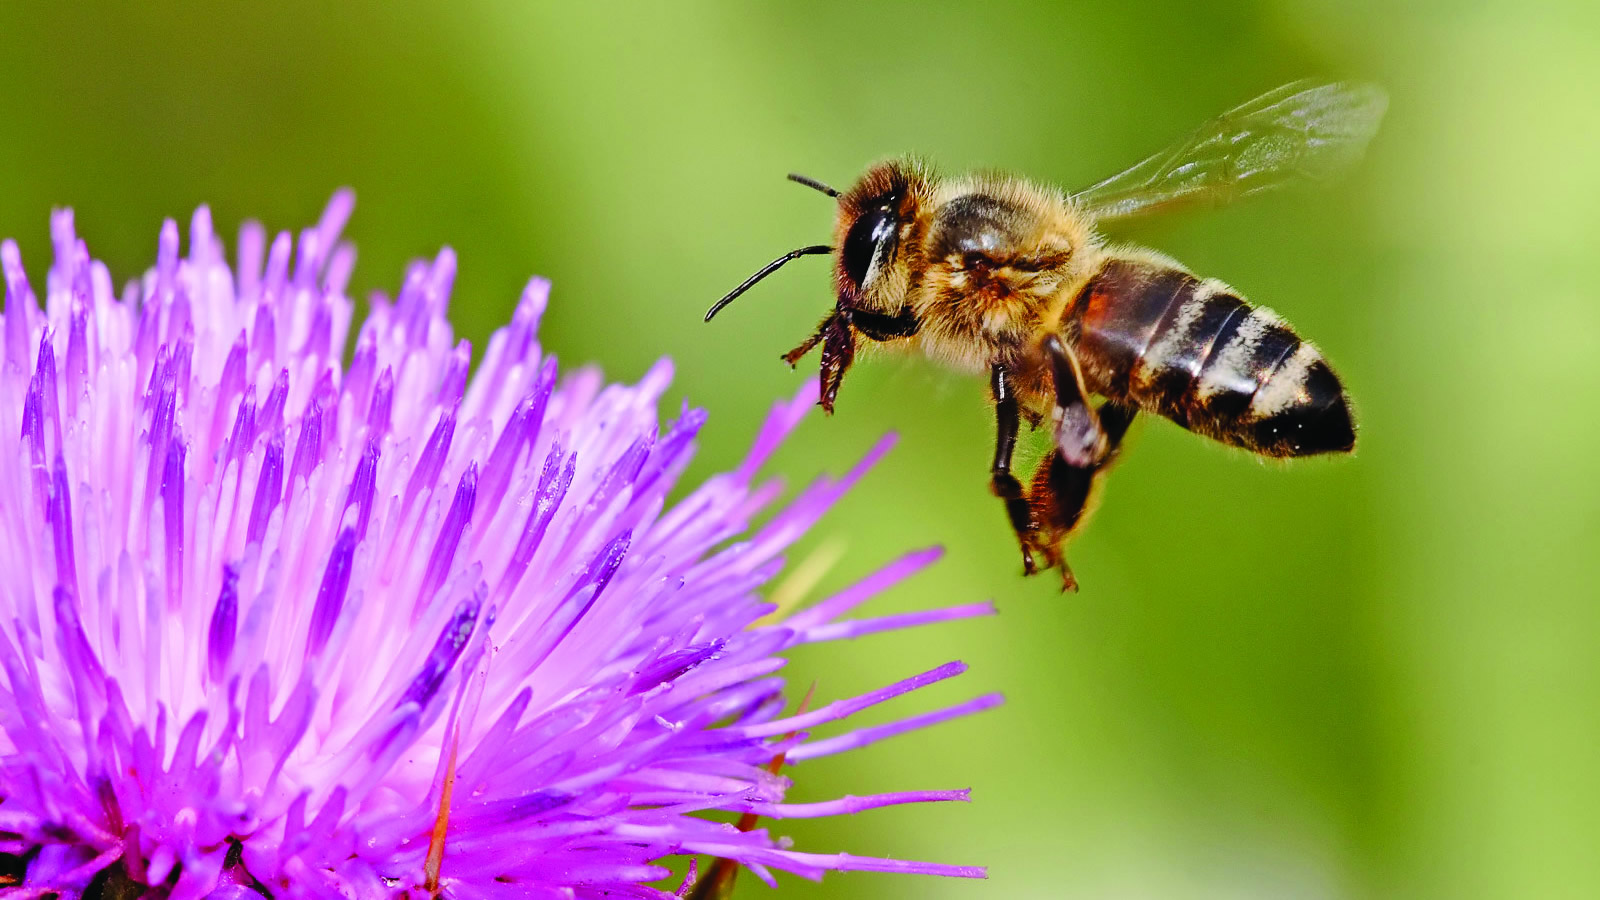 <h4>NO BEES, NO FOOD</h4><h5>Goal: To stem the alarming decline in bees and other pollinator species, let's stop using the bee-killing pesticides known as neonicotinoids.</h5><em>sheliapic76 via Flickr</em>